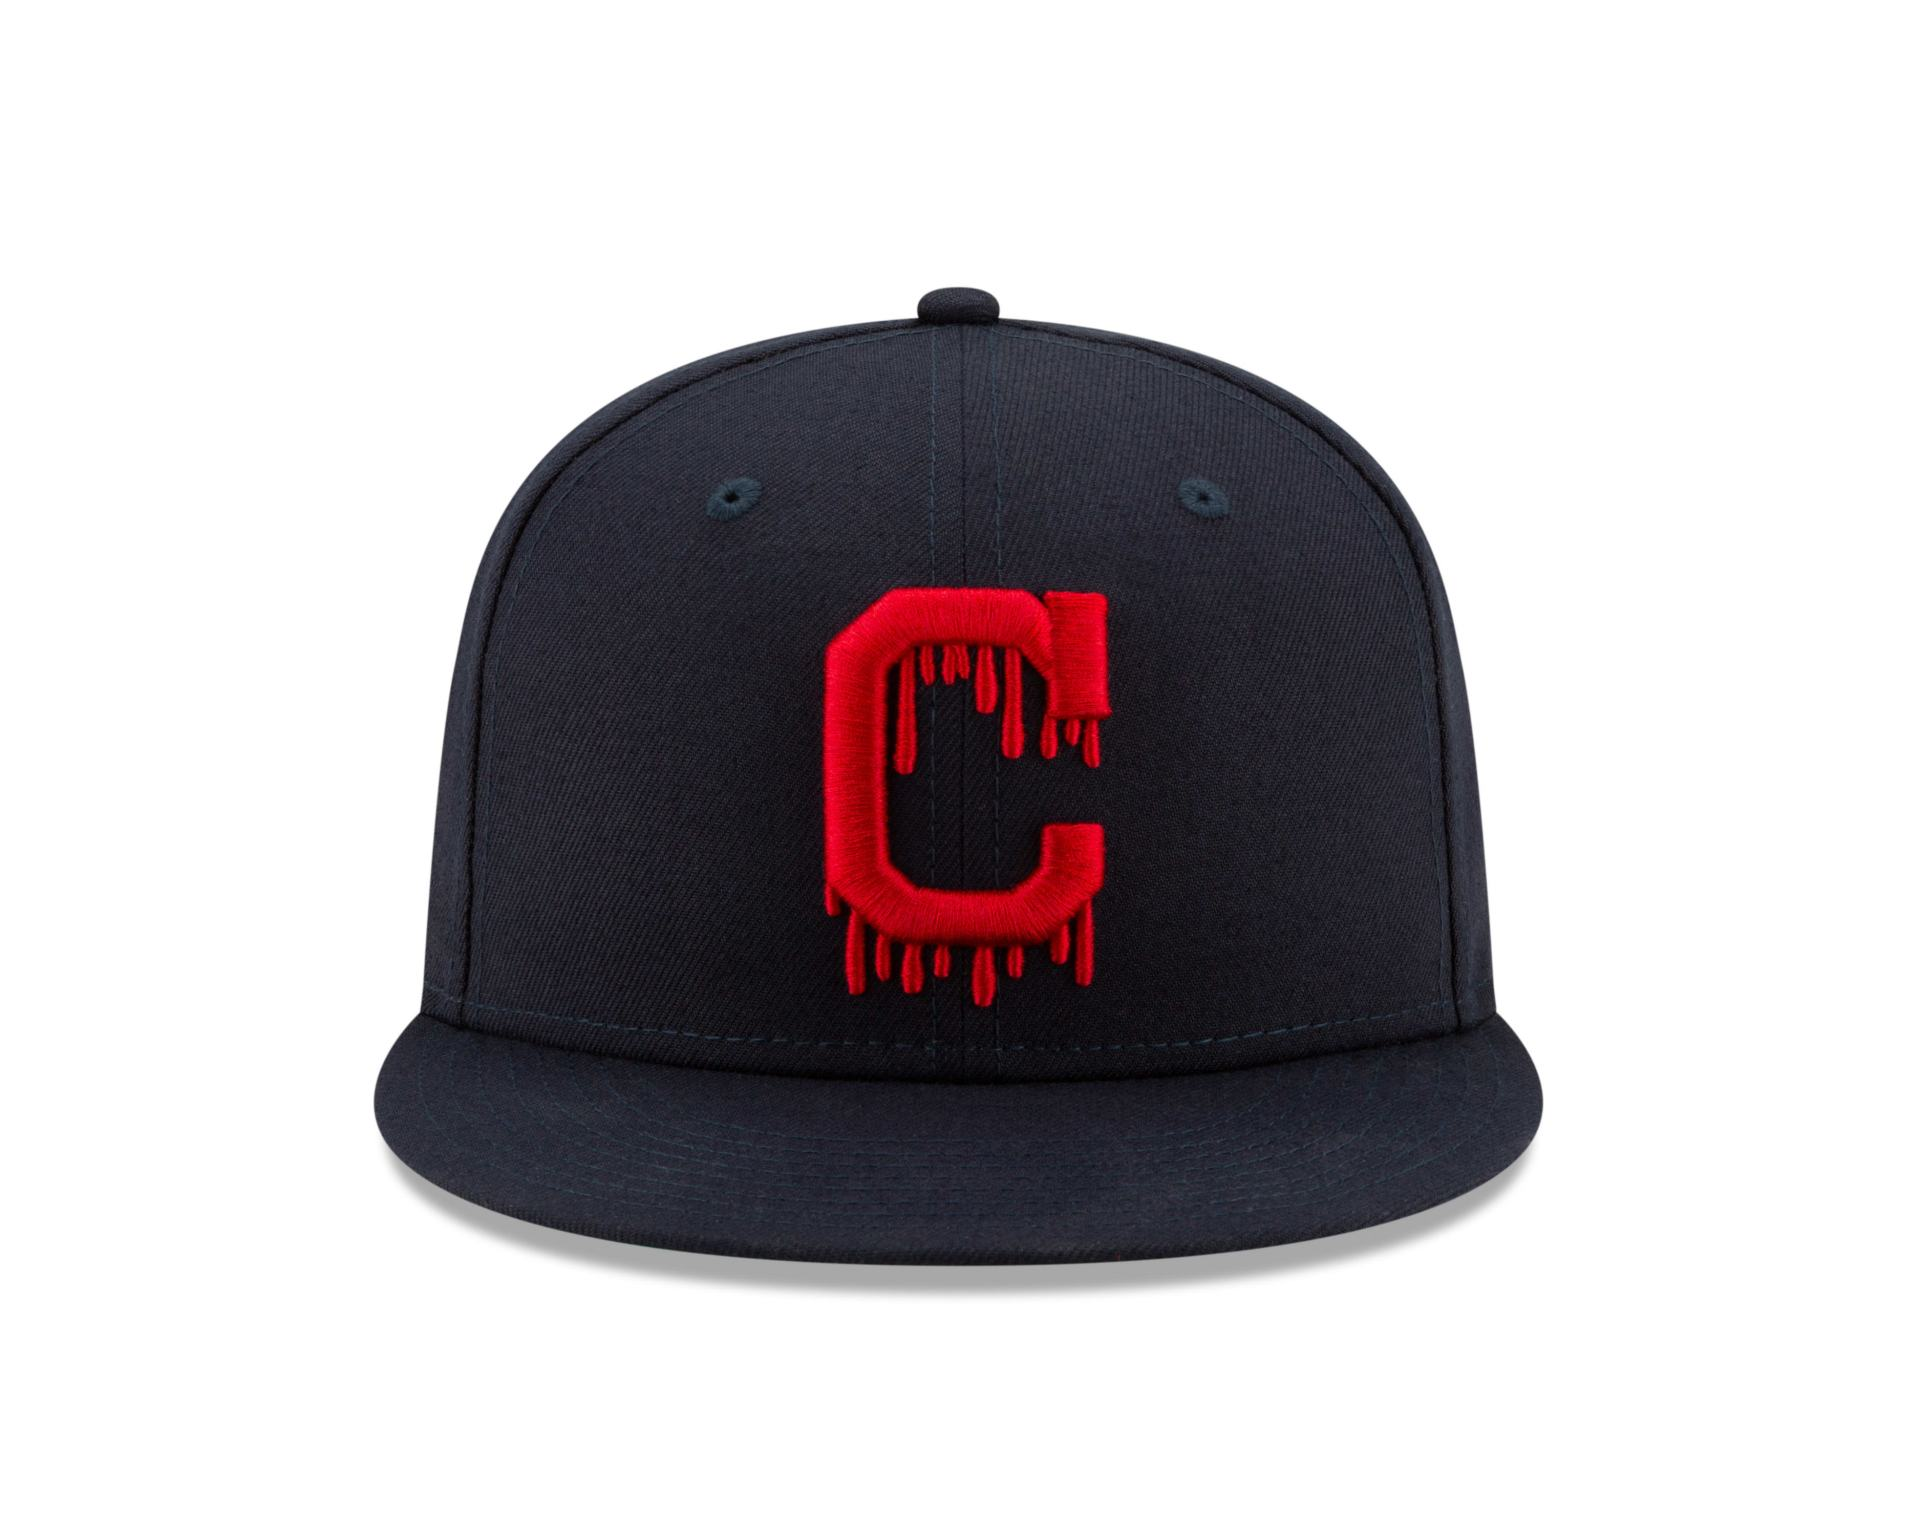 7cee3d39ee147 Kid Cudi To Release Limited Edition New Era 2019 MLB All-Star Hat ...